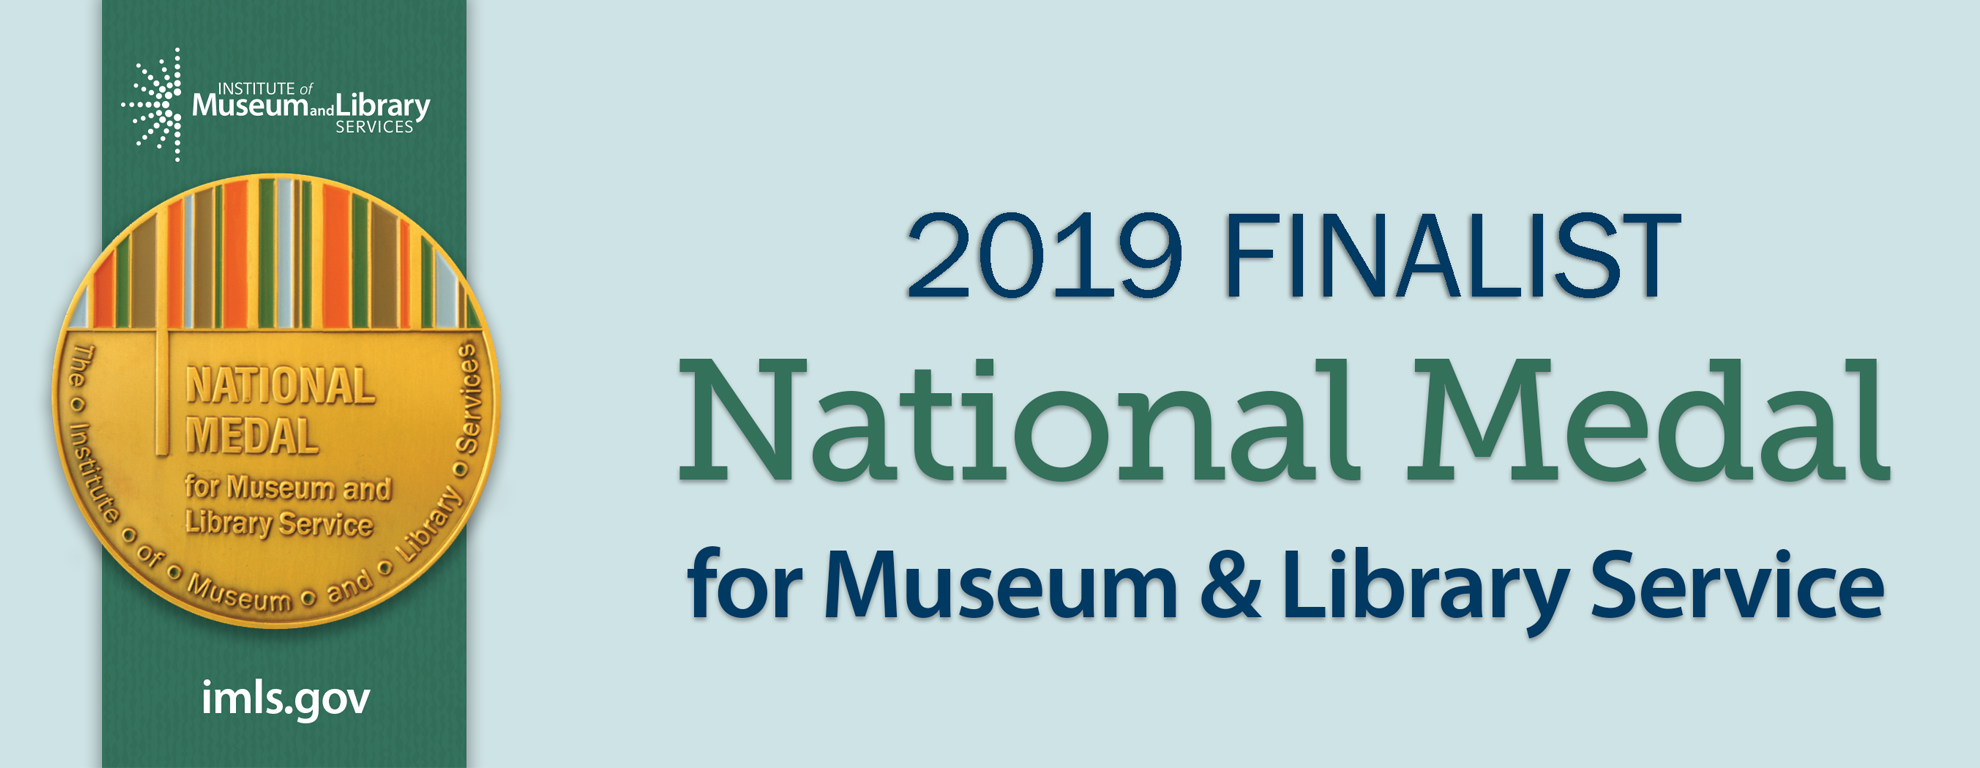 Tempe Public Library is a IMLS National Medal 2019 Finalist